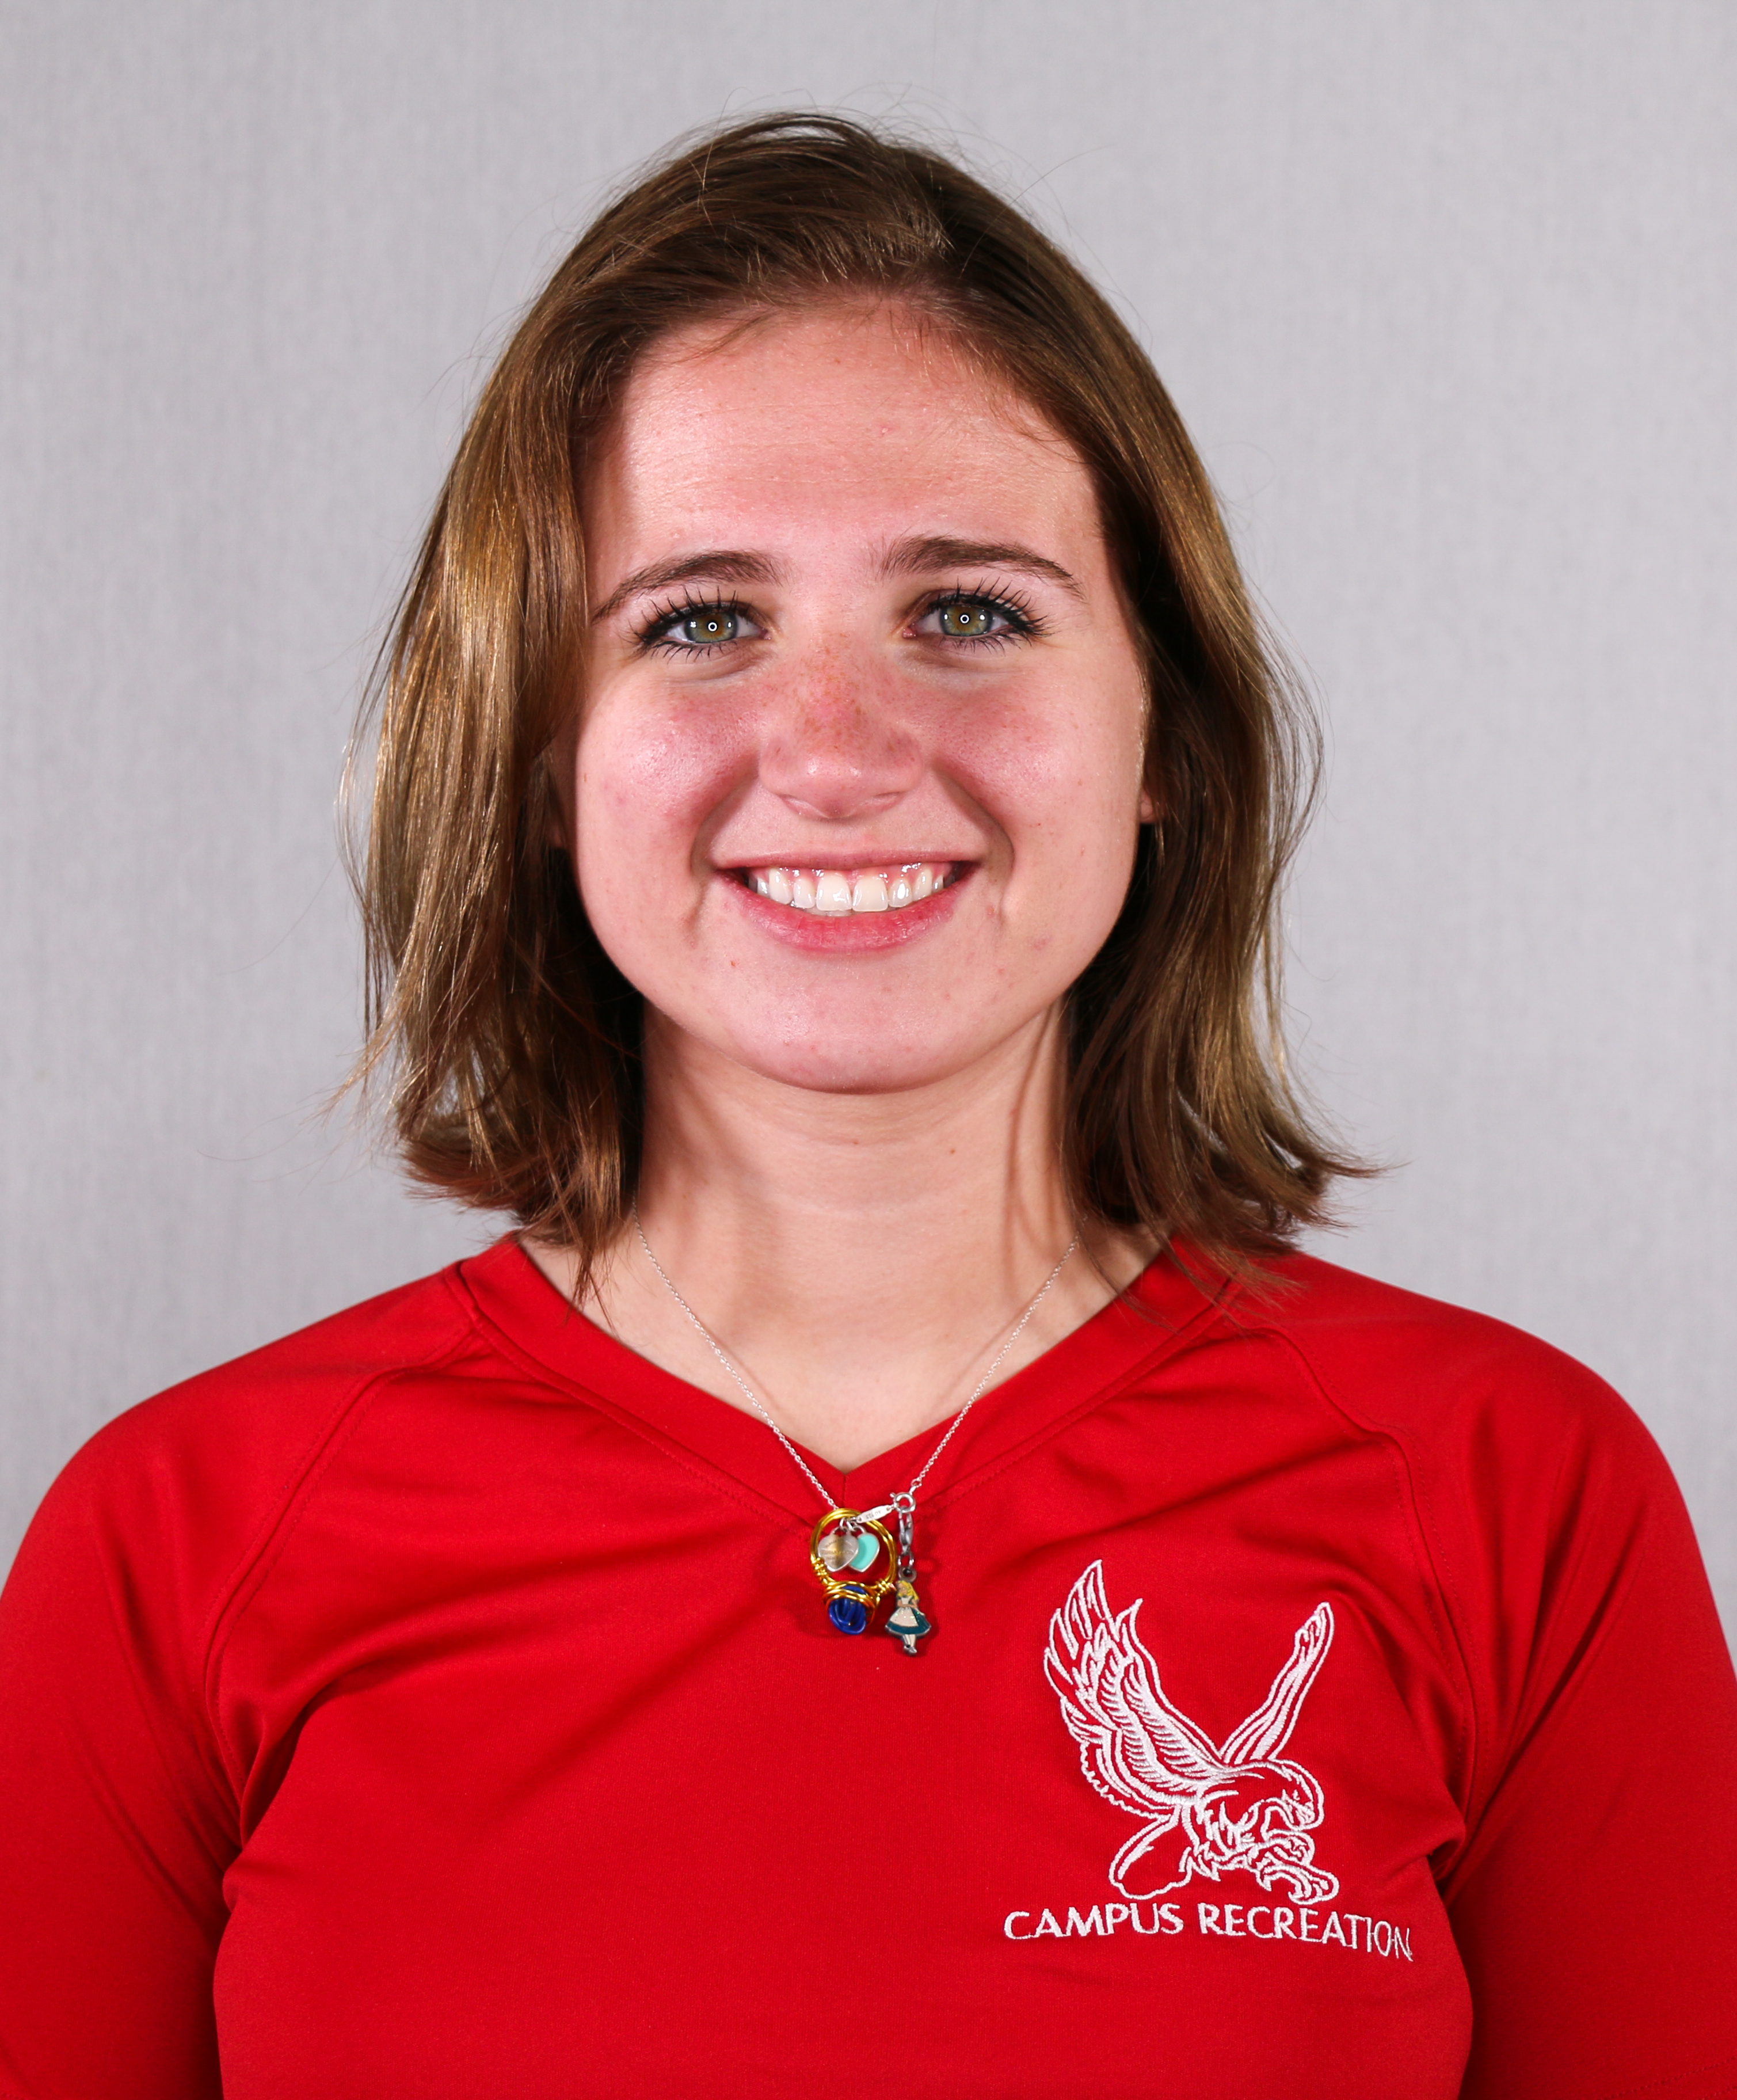 Headshot of Alexis Gross wearing a red Campus Recreation t-shirt.